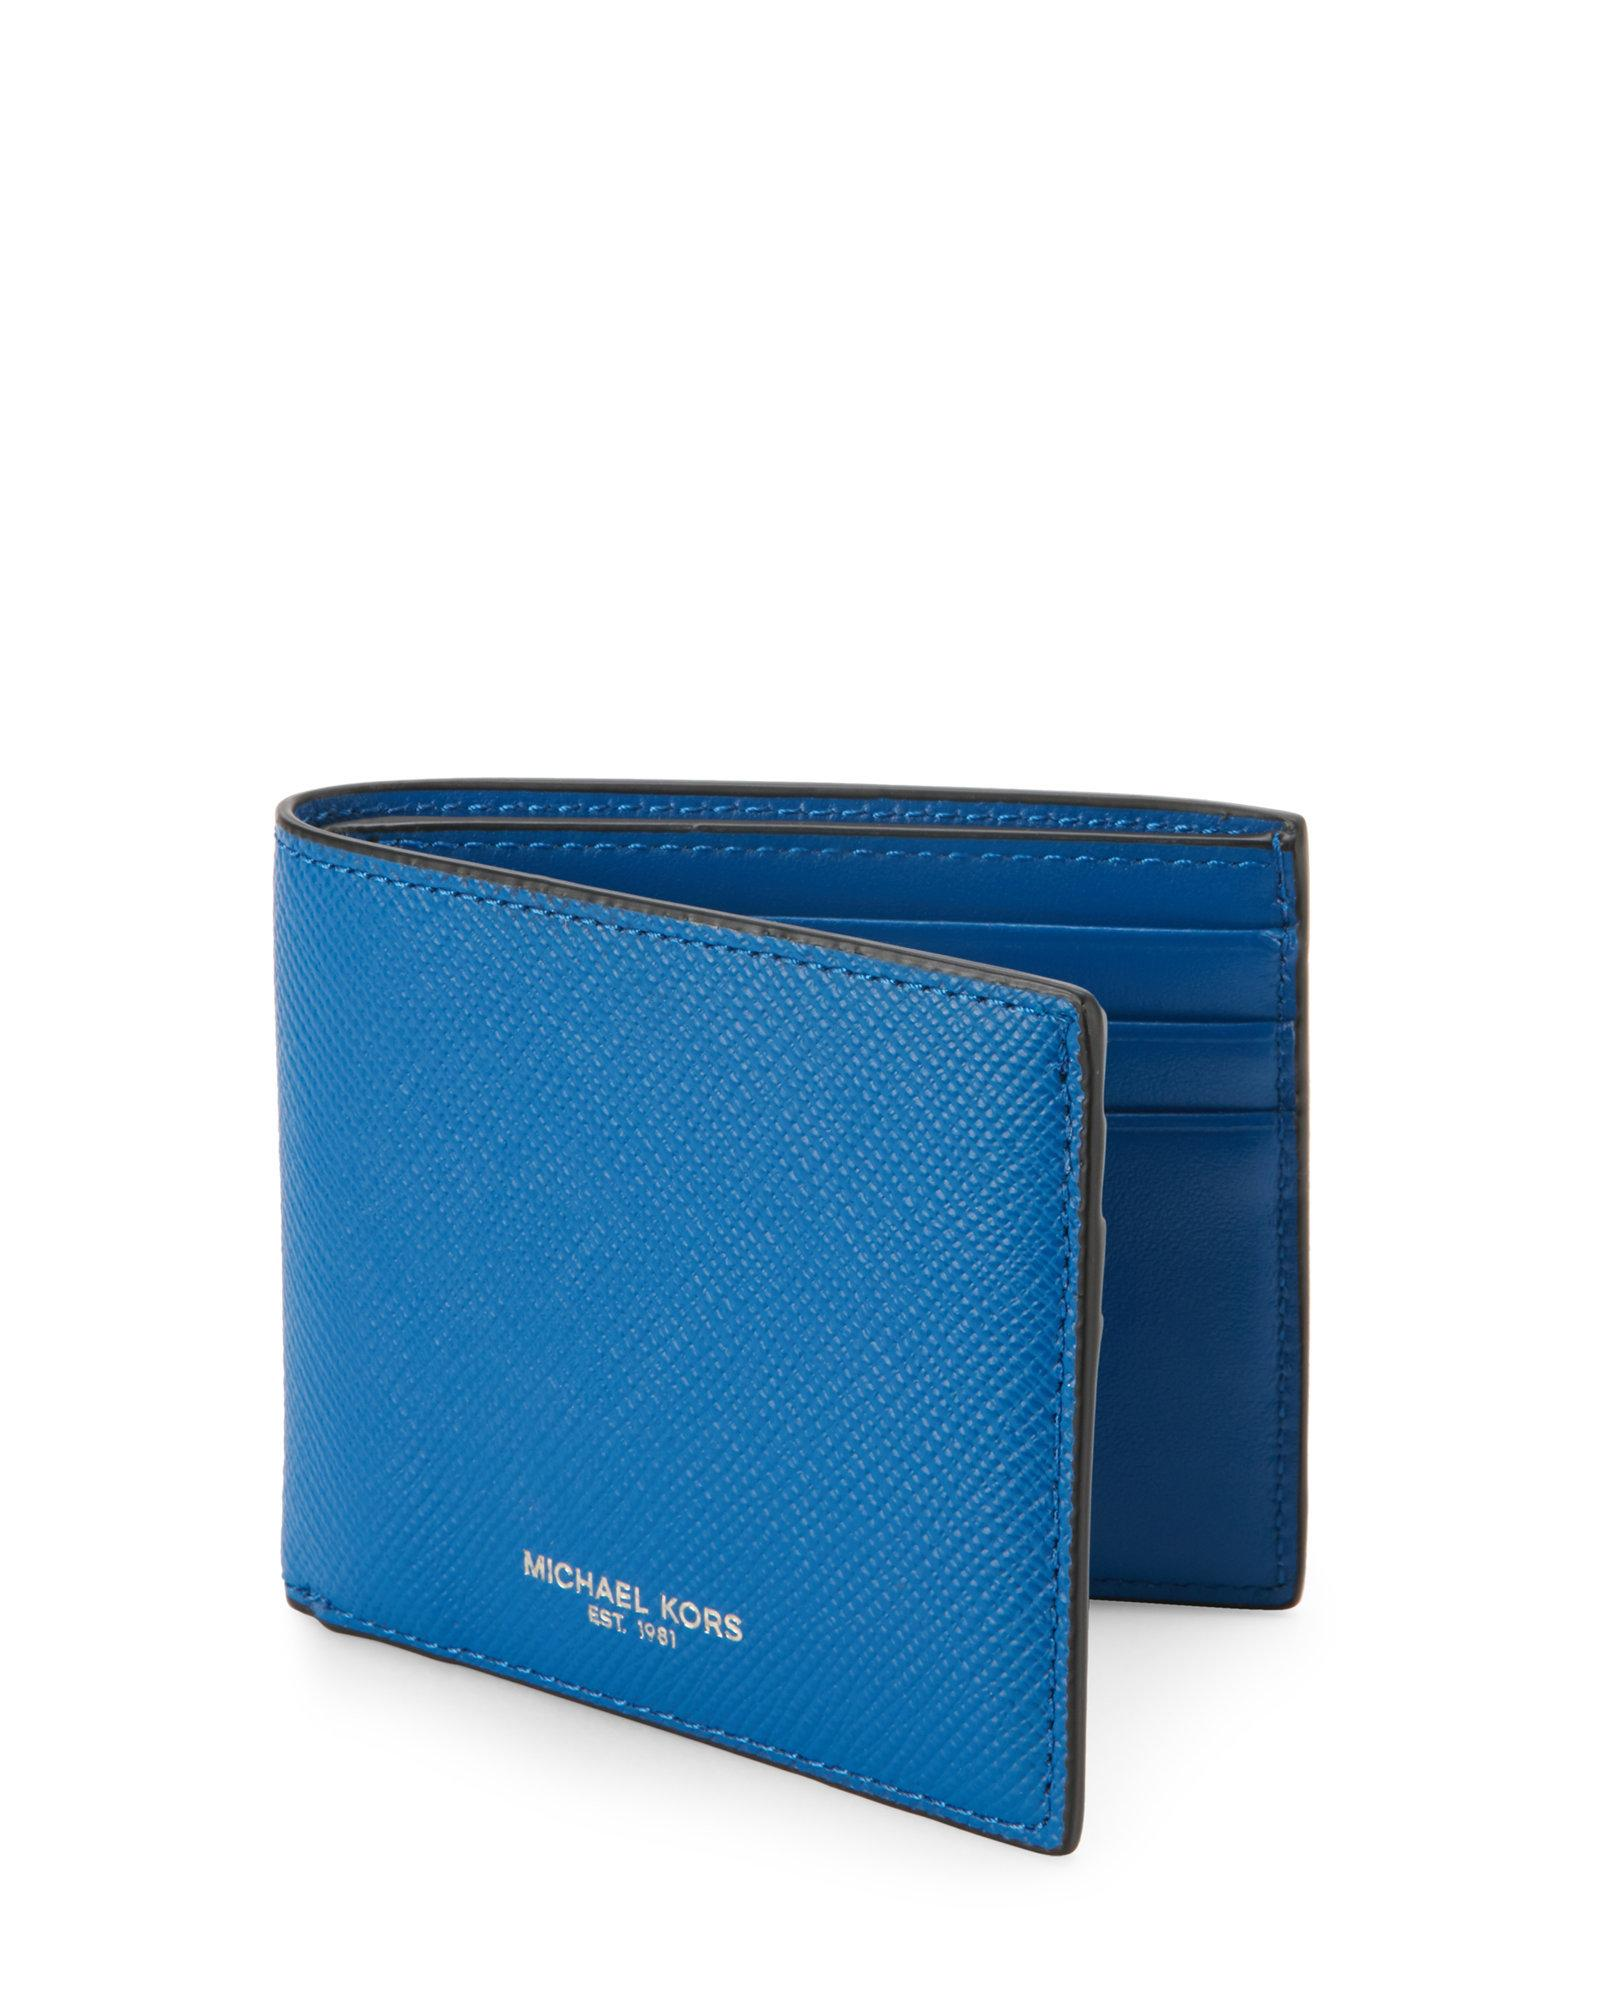 7c8a4ead0759 ... coupon for lyst michael kors electric blue harrison leather billfold  wallet 86559 00dd3